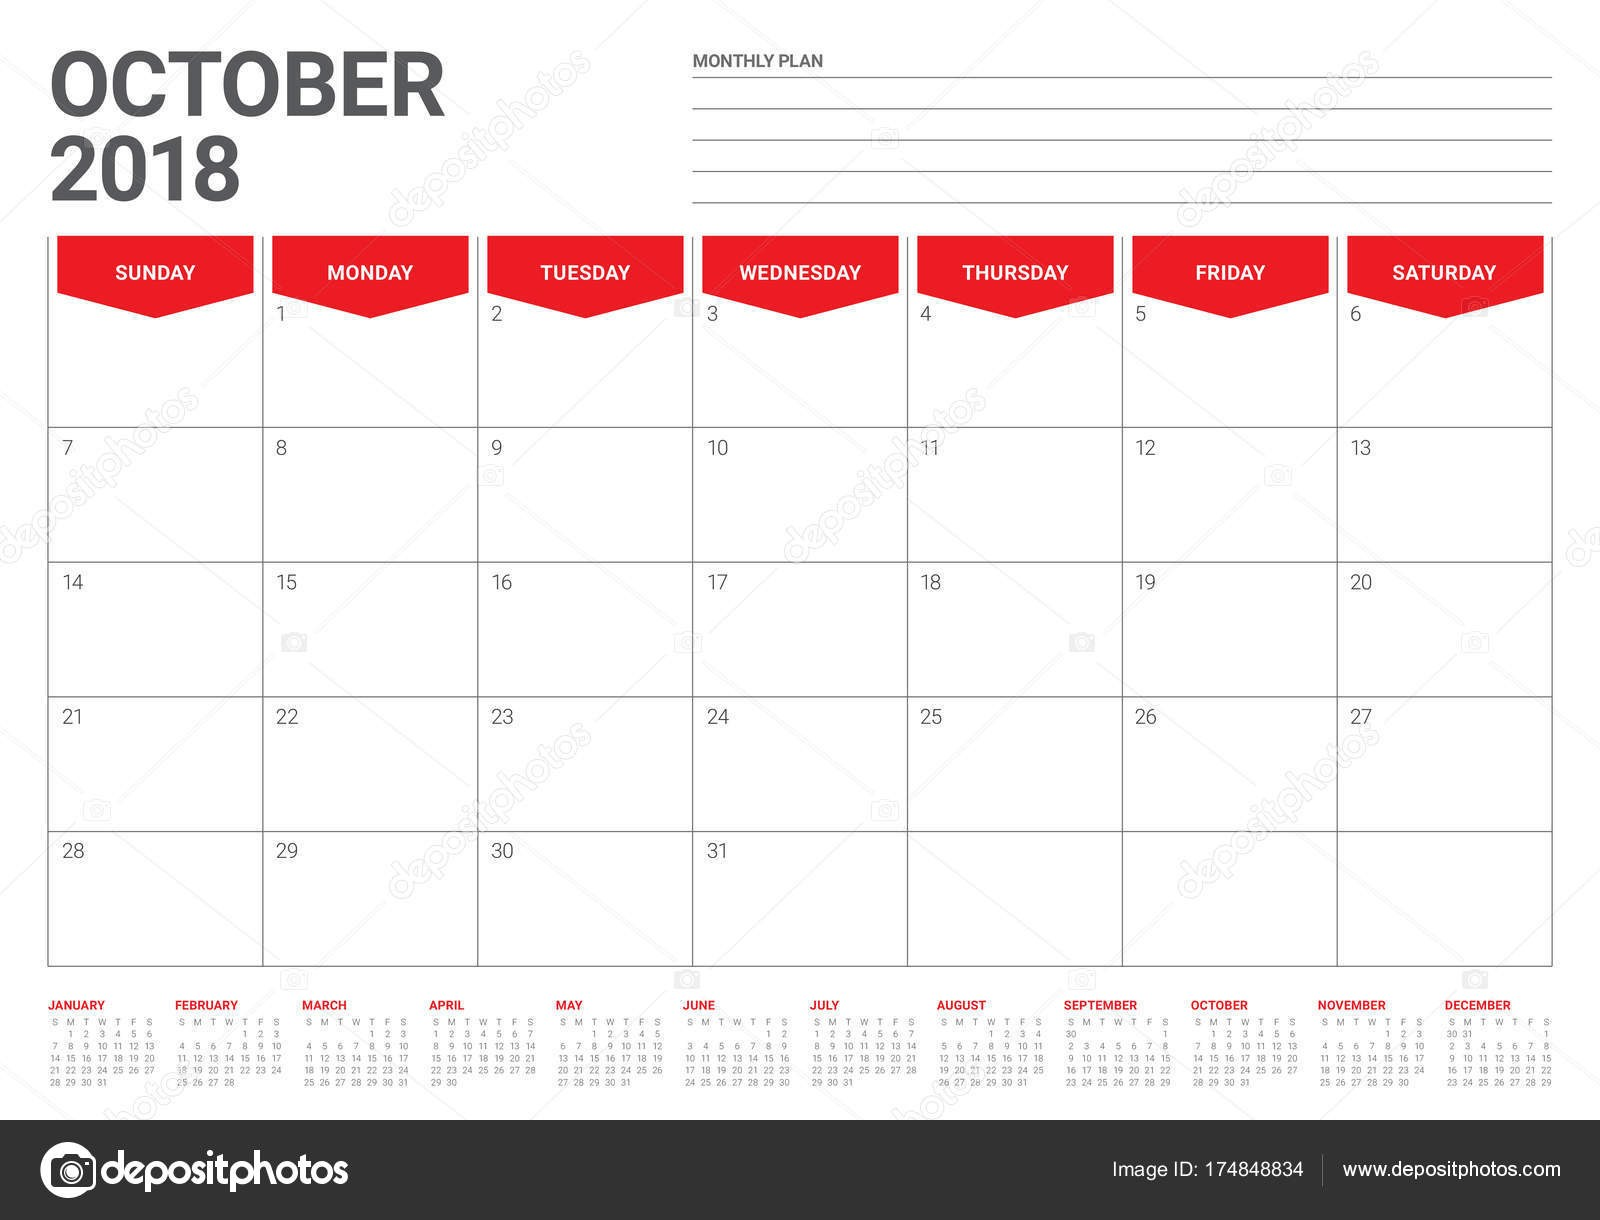 Calendário 2019 Pdf Download Actual Calendario Octubre 2018 Colombia T Of Calendário 2019 Pdf Download Actual Calendario Octubre 2018 Colombia T